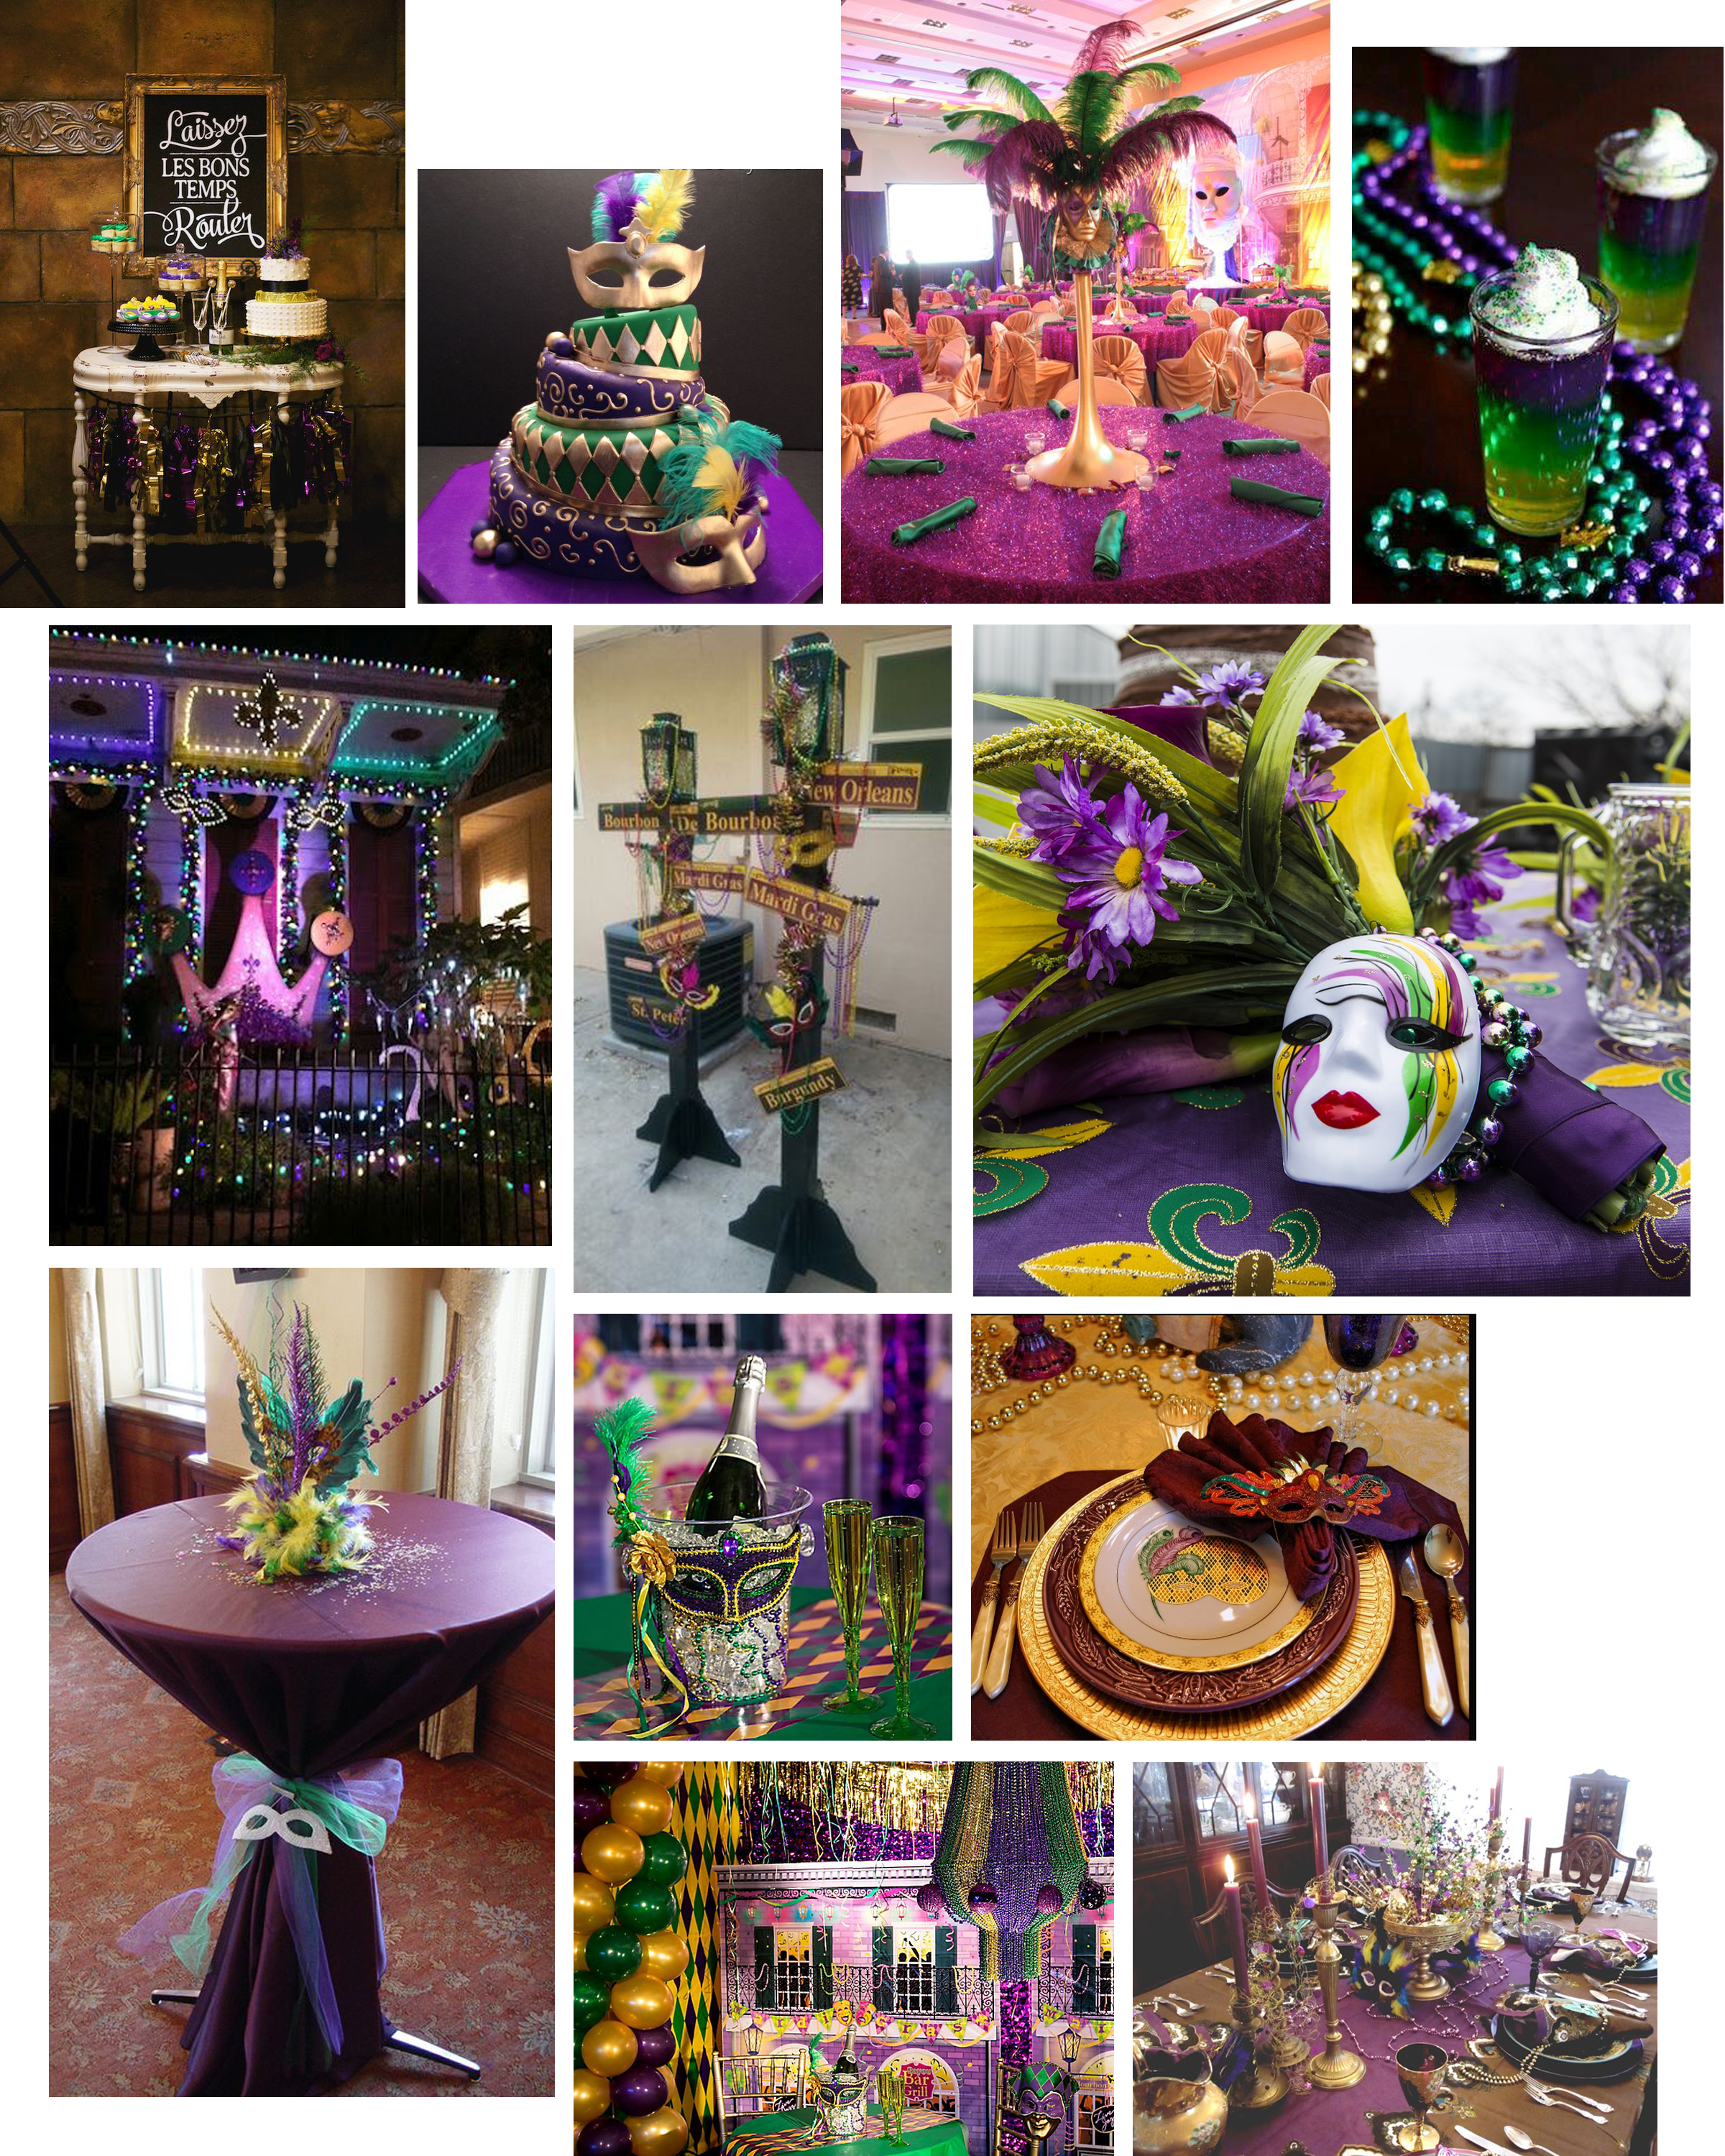 """The history of Mardi Gras (Cliff note version):Traditionally, in the days leading up to Lent, merrymakers would binge on all the meat, eggs, milk and cheese that remained in their homes, preparing for several weeks ofeating only fish and fasting. In France, the day before Ash Wednesday came to be known as  Mardi Gras , or """"Fat Tuesday."""""""